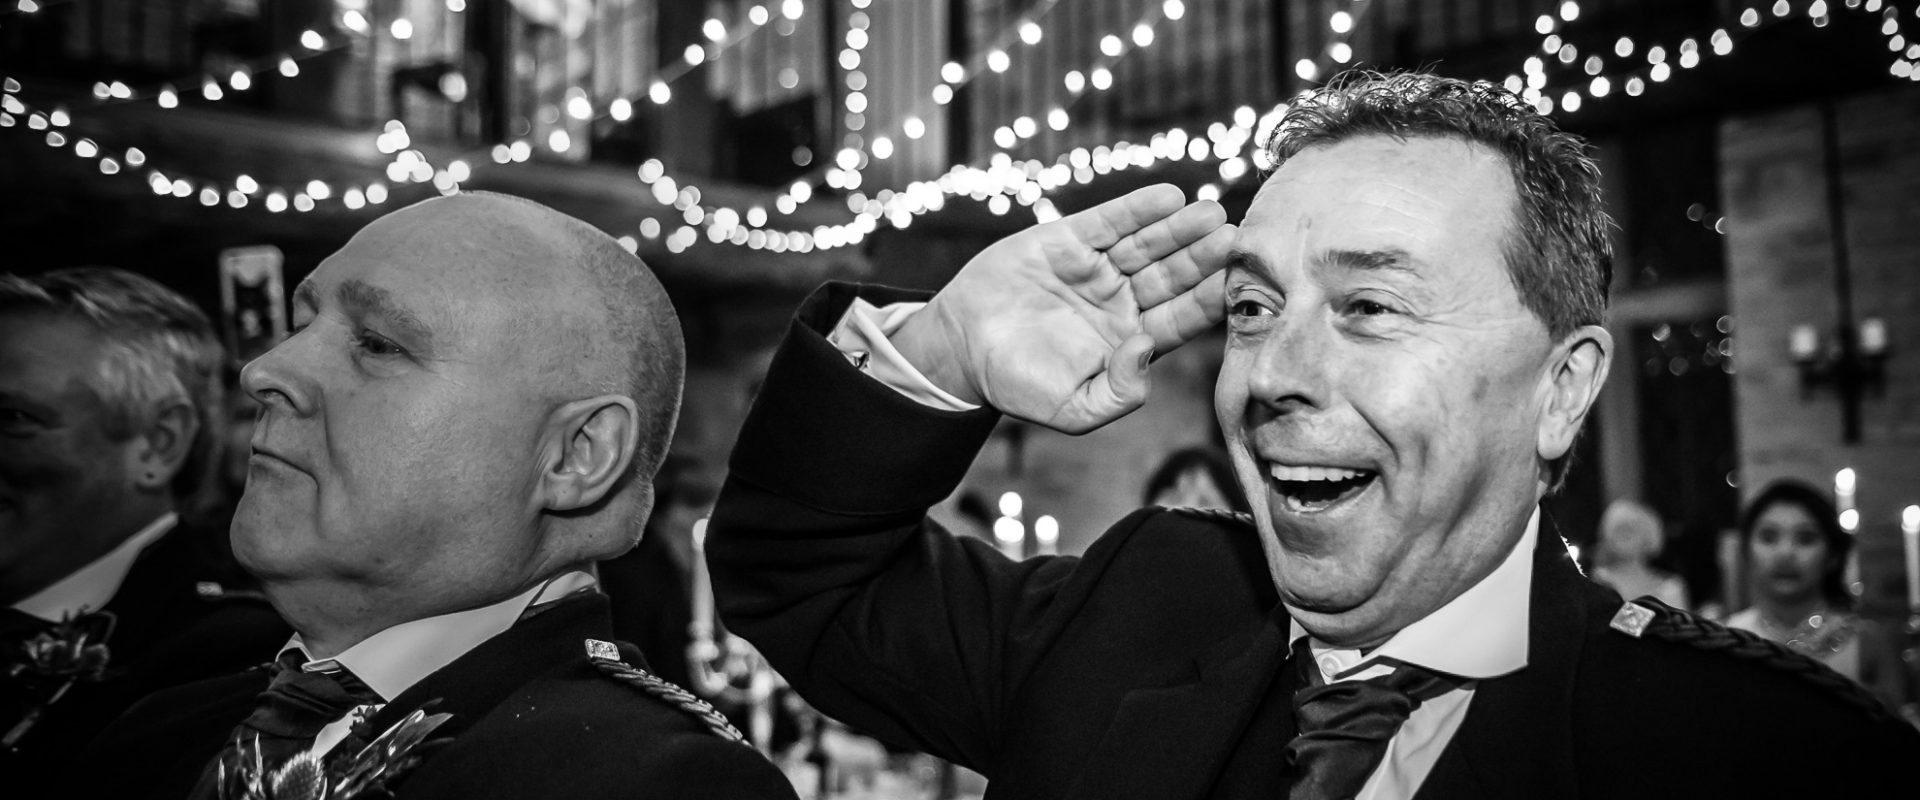 guest spontaneously snaps a salute